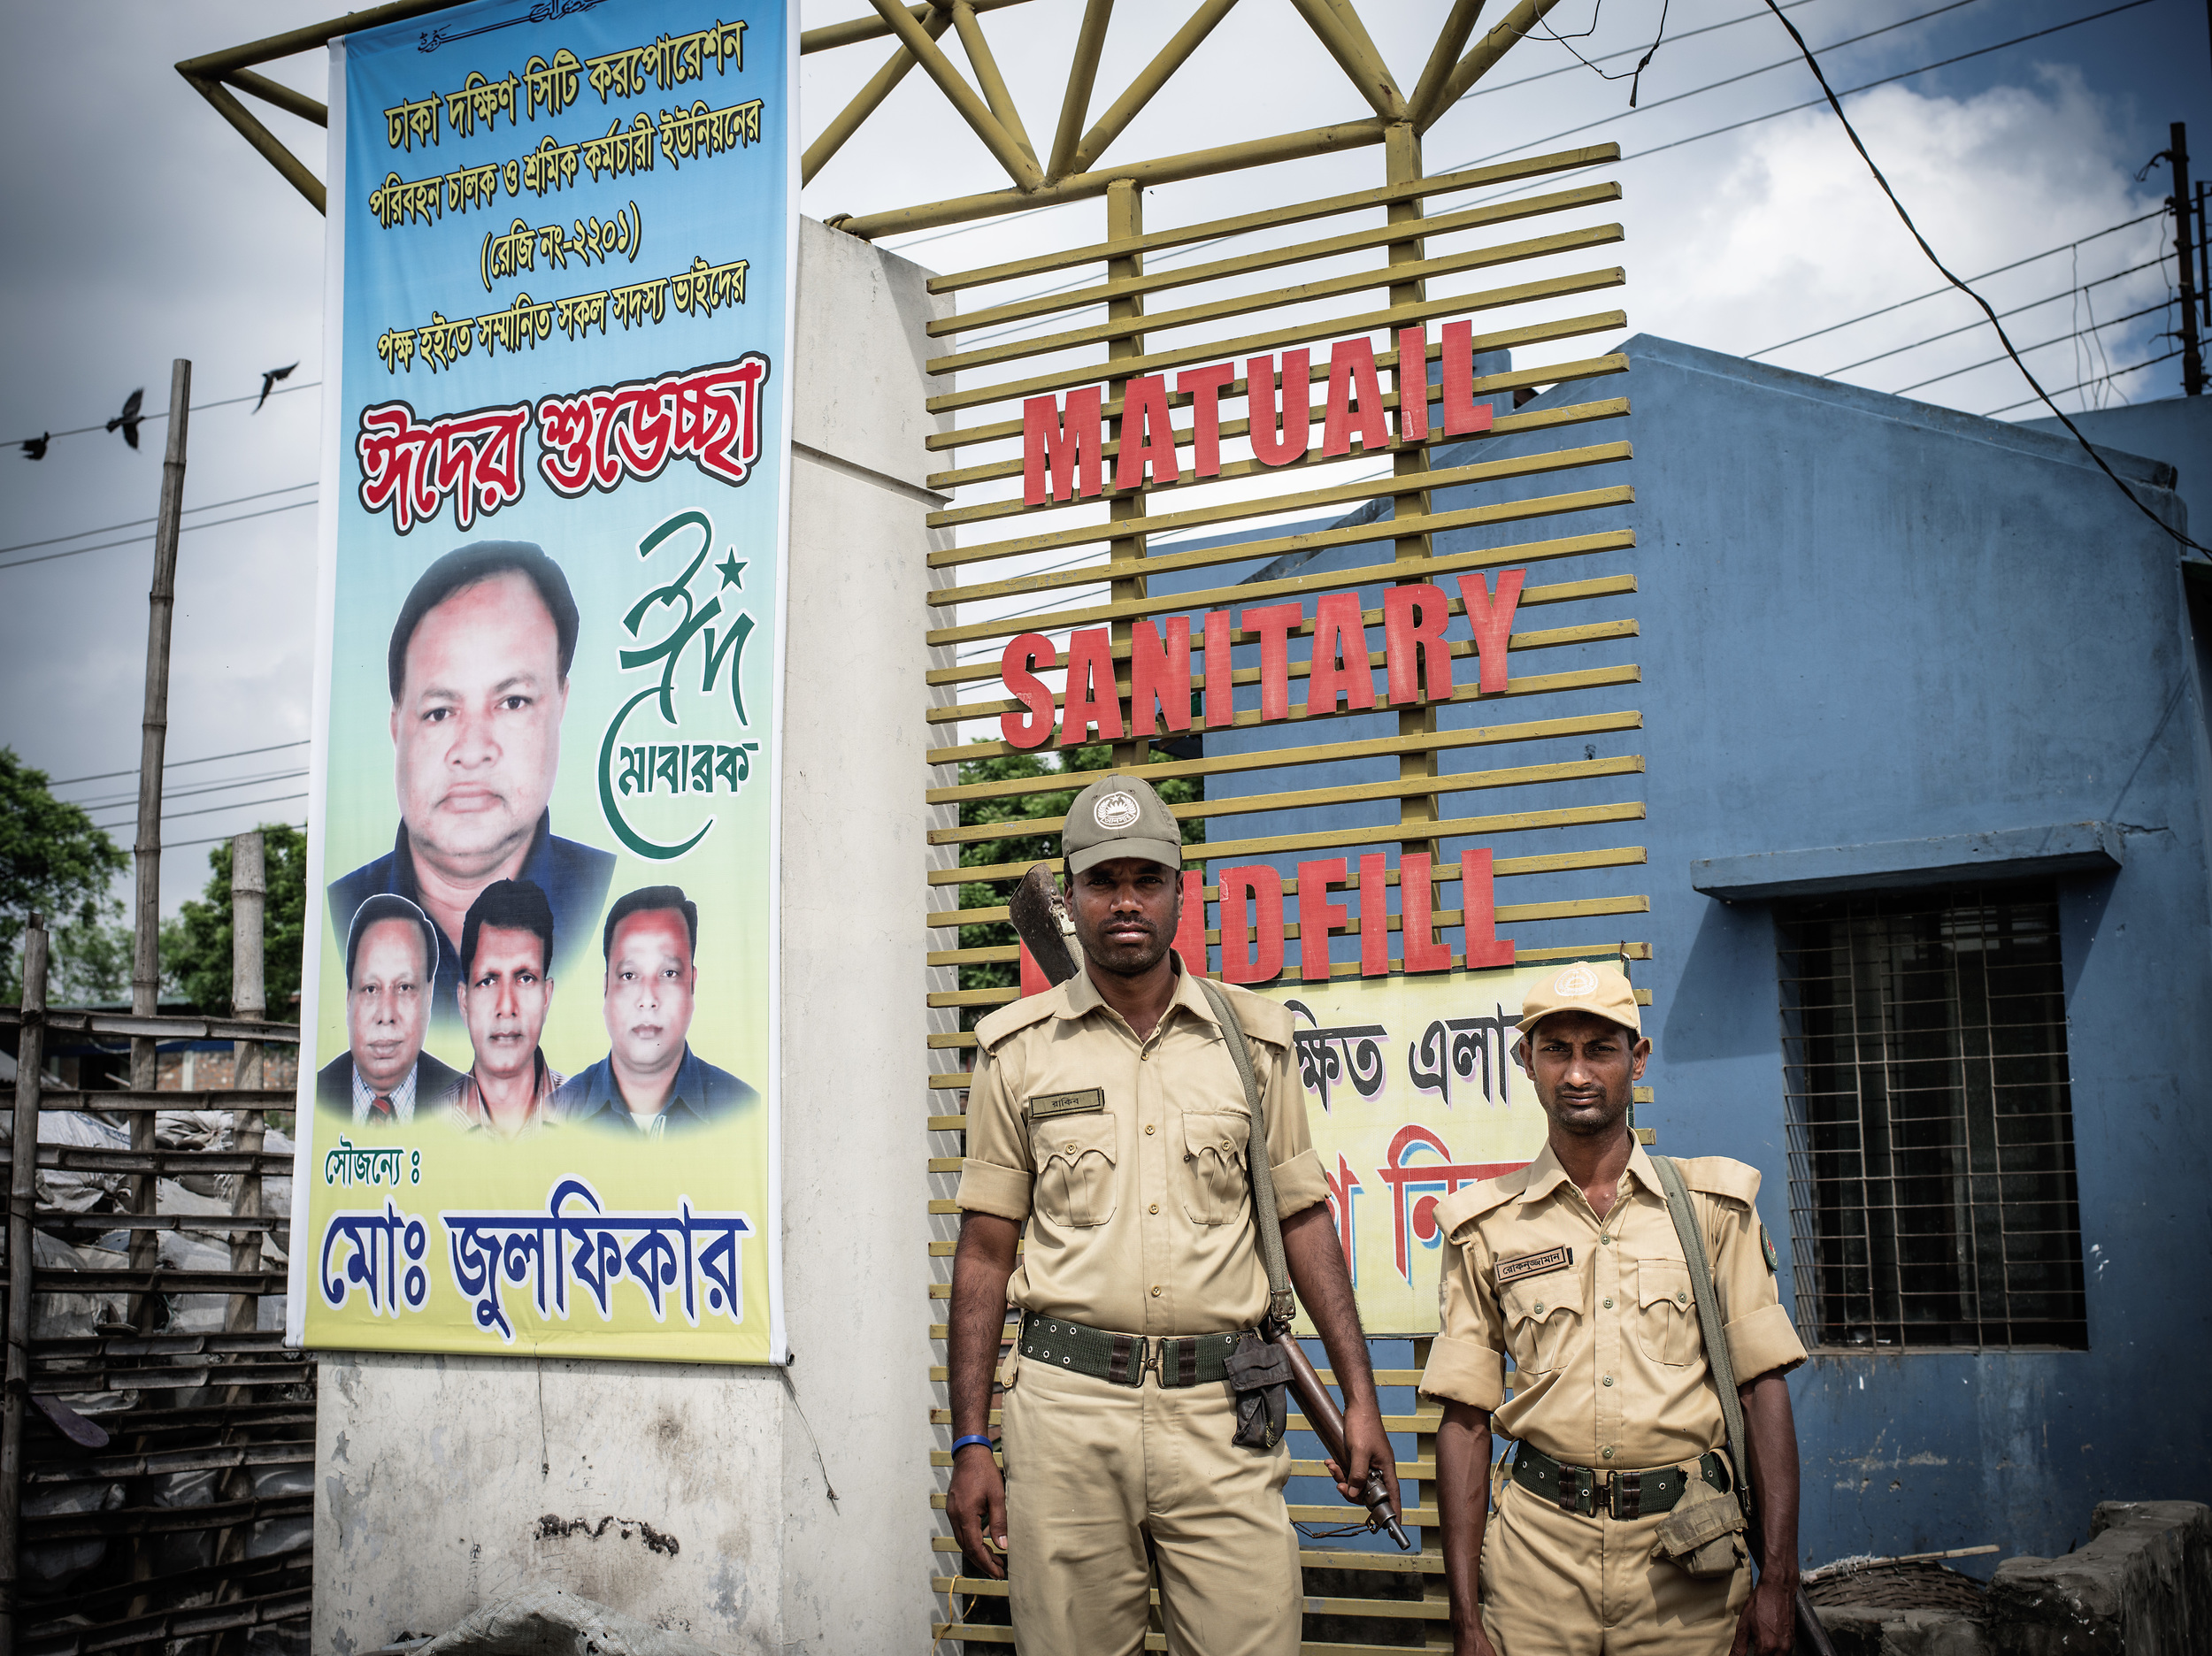 Guards at Matuail Landfill in Dhaka, Bangladesh.